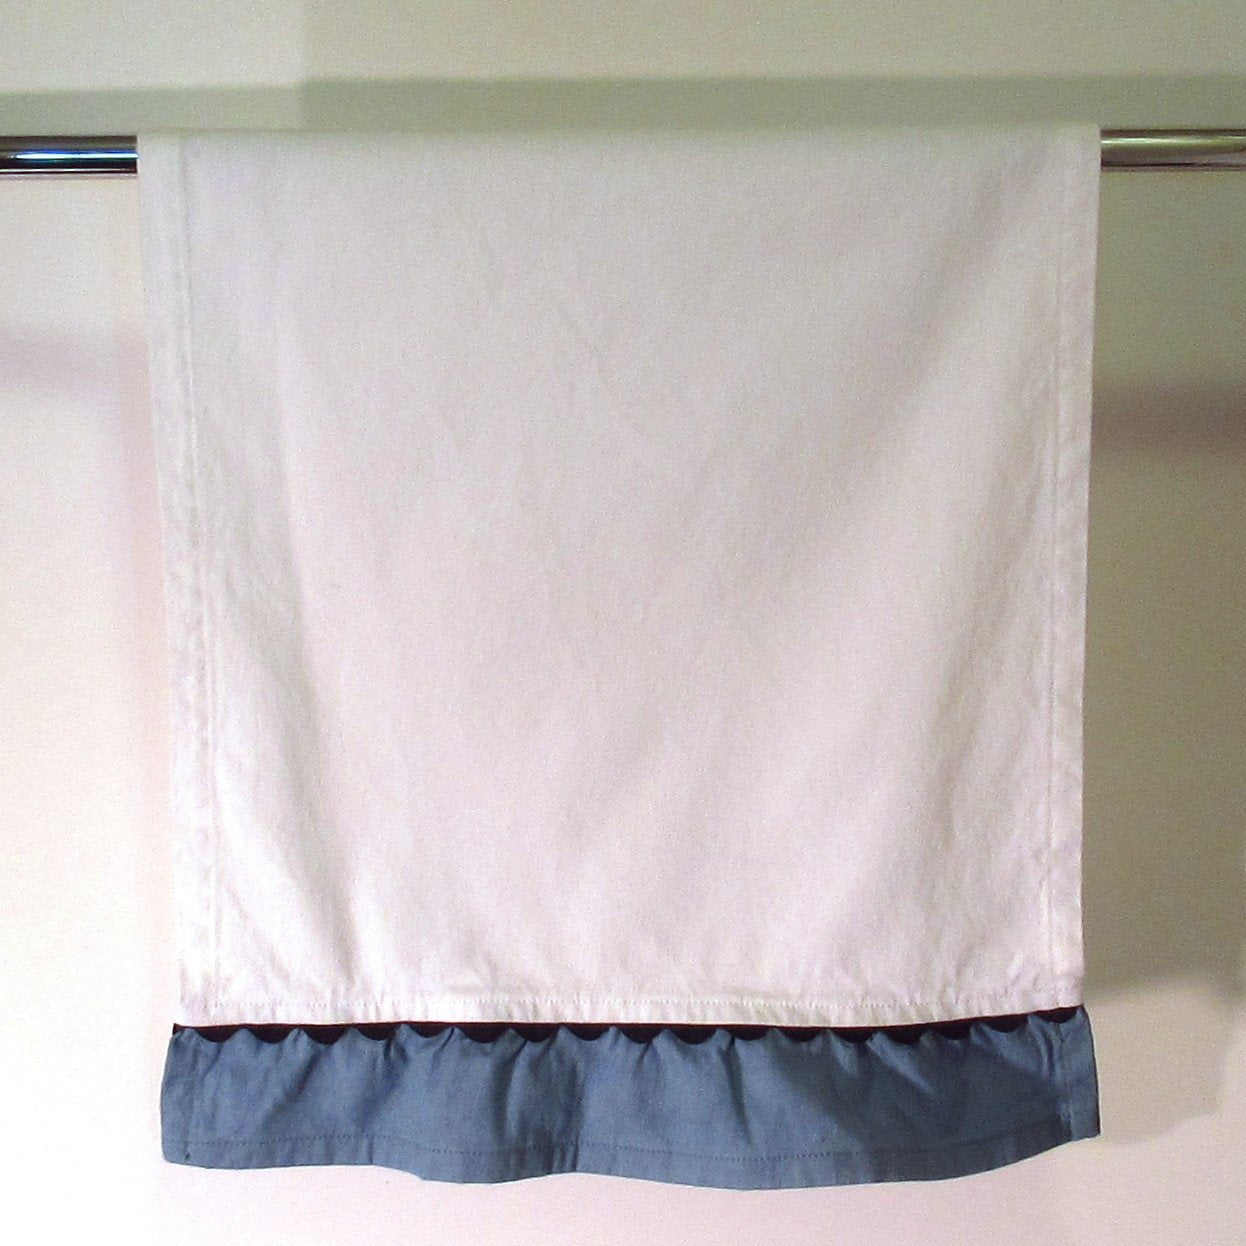 Blue Ruffled Towel With Black Rick Rack